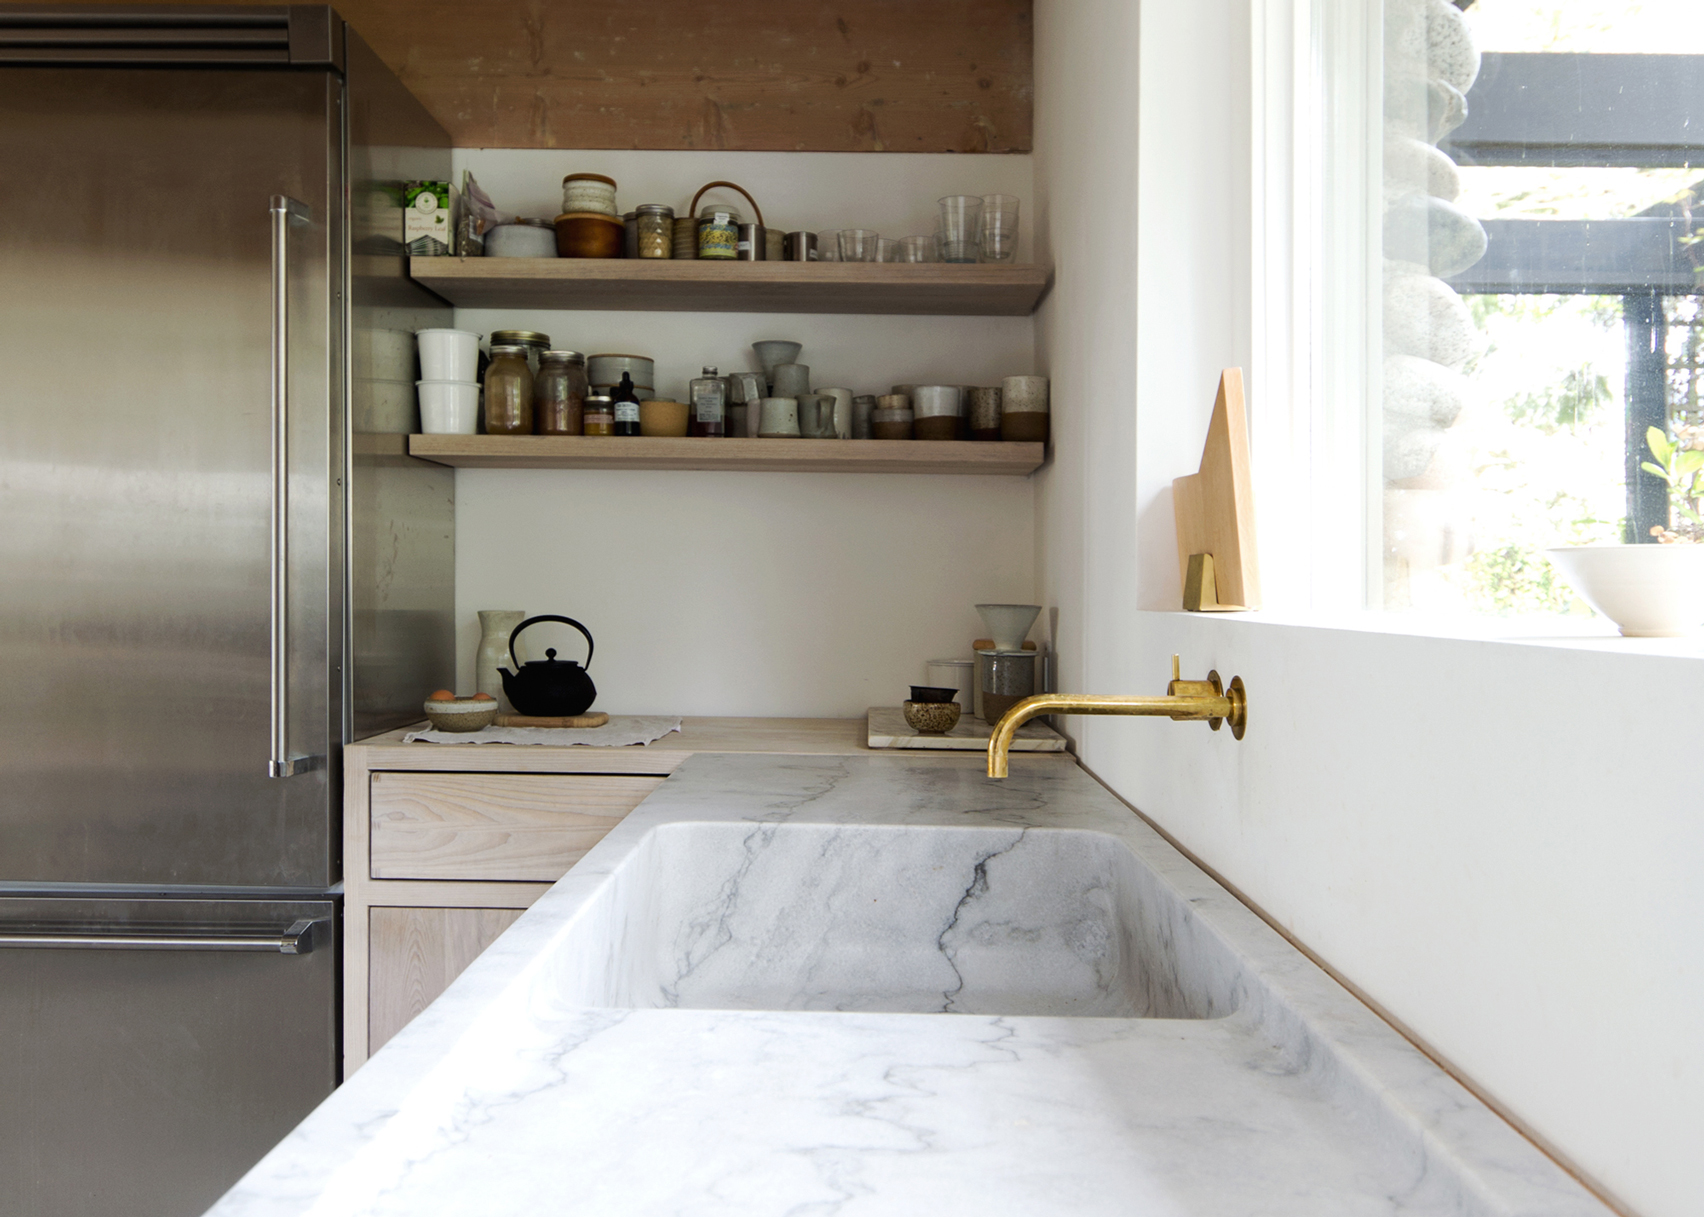 Canadian mountain home by Scott & Scott is one of the 10 most popular marble interiors on Pinterest